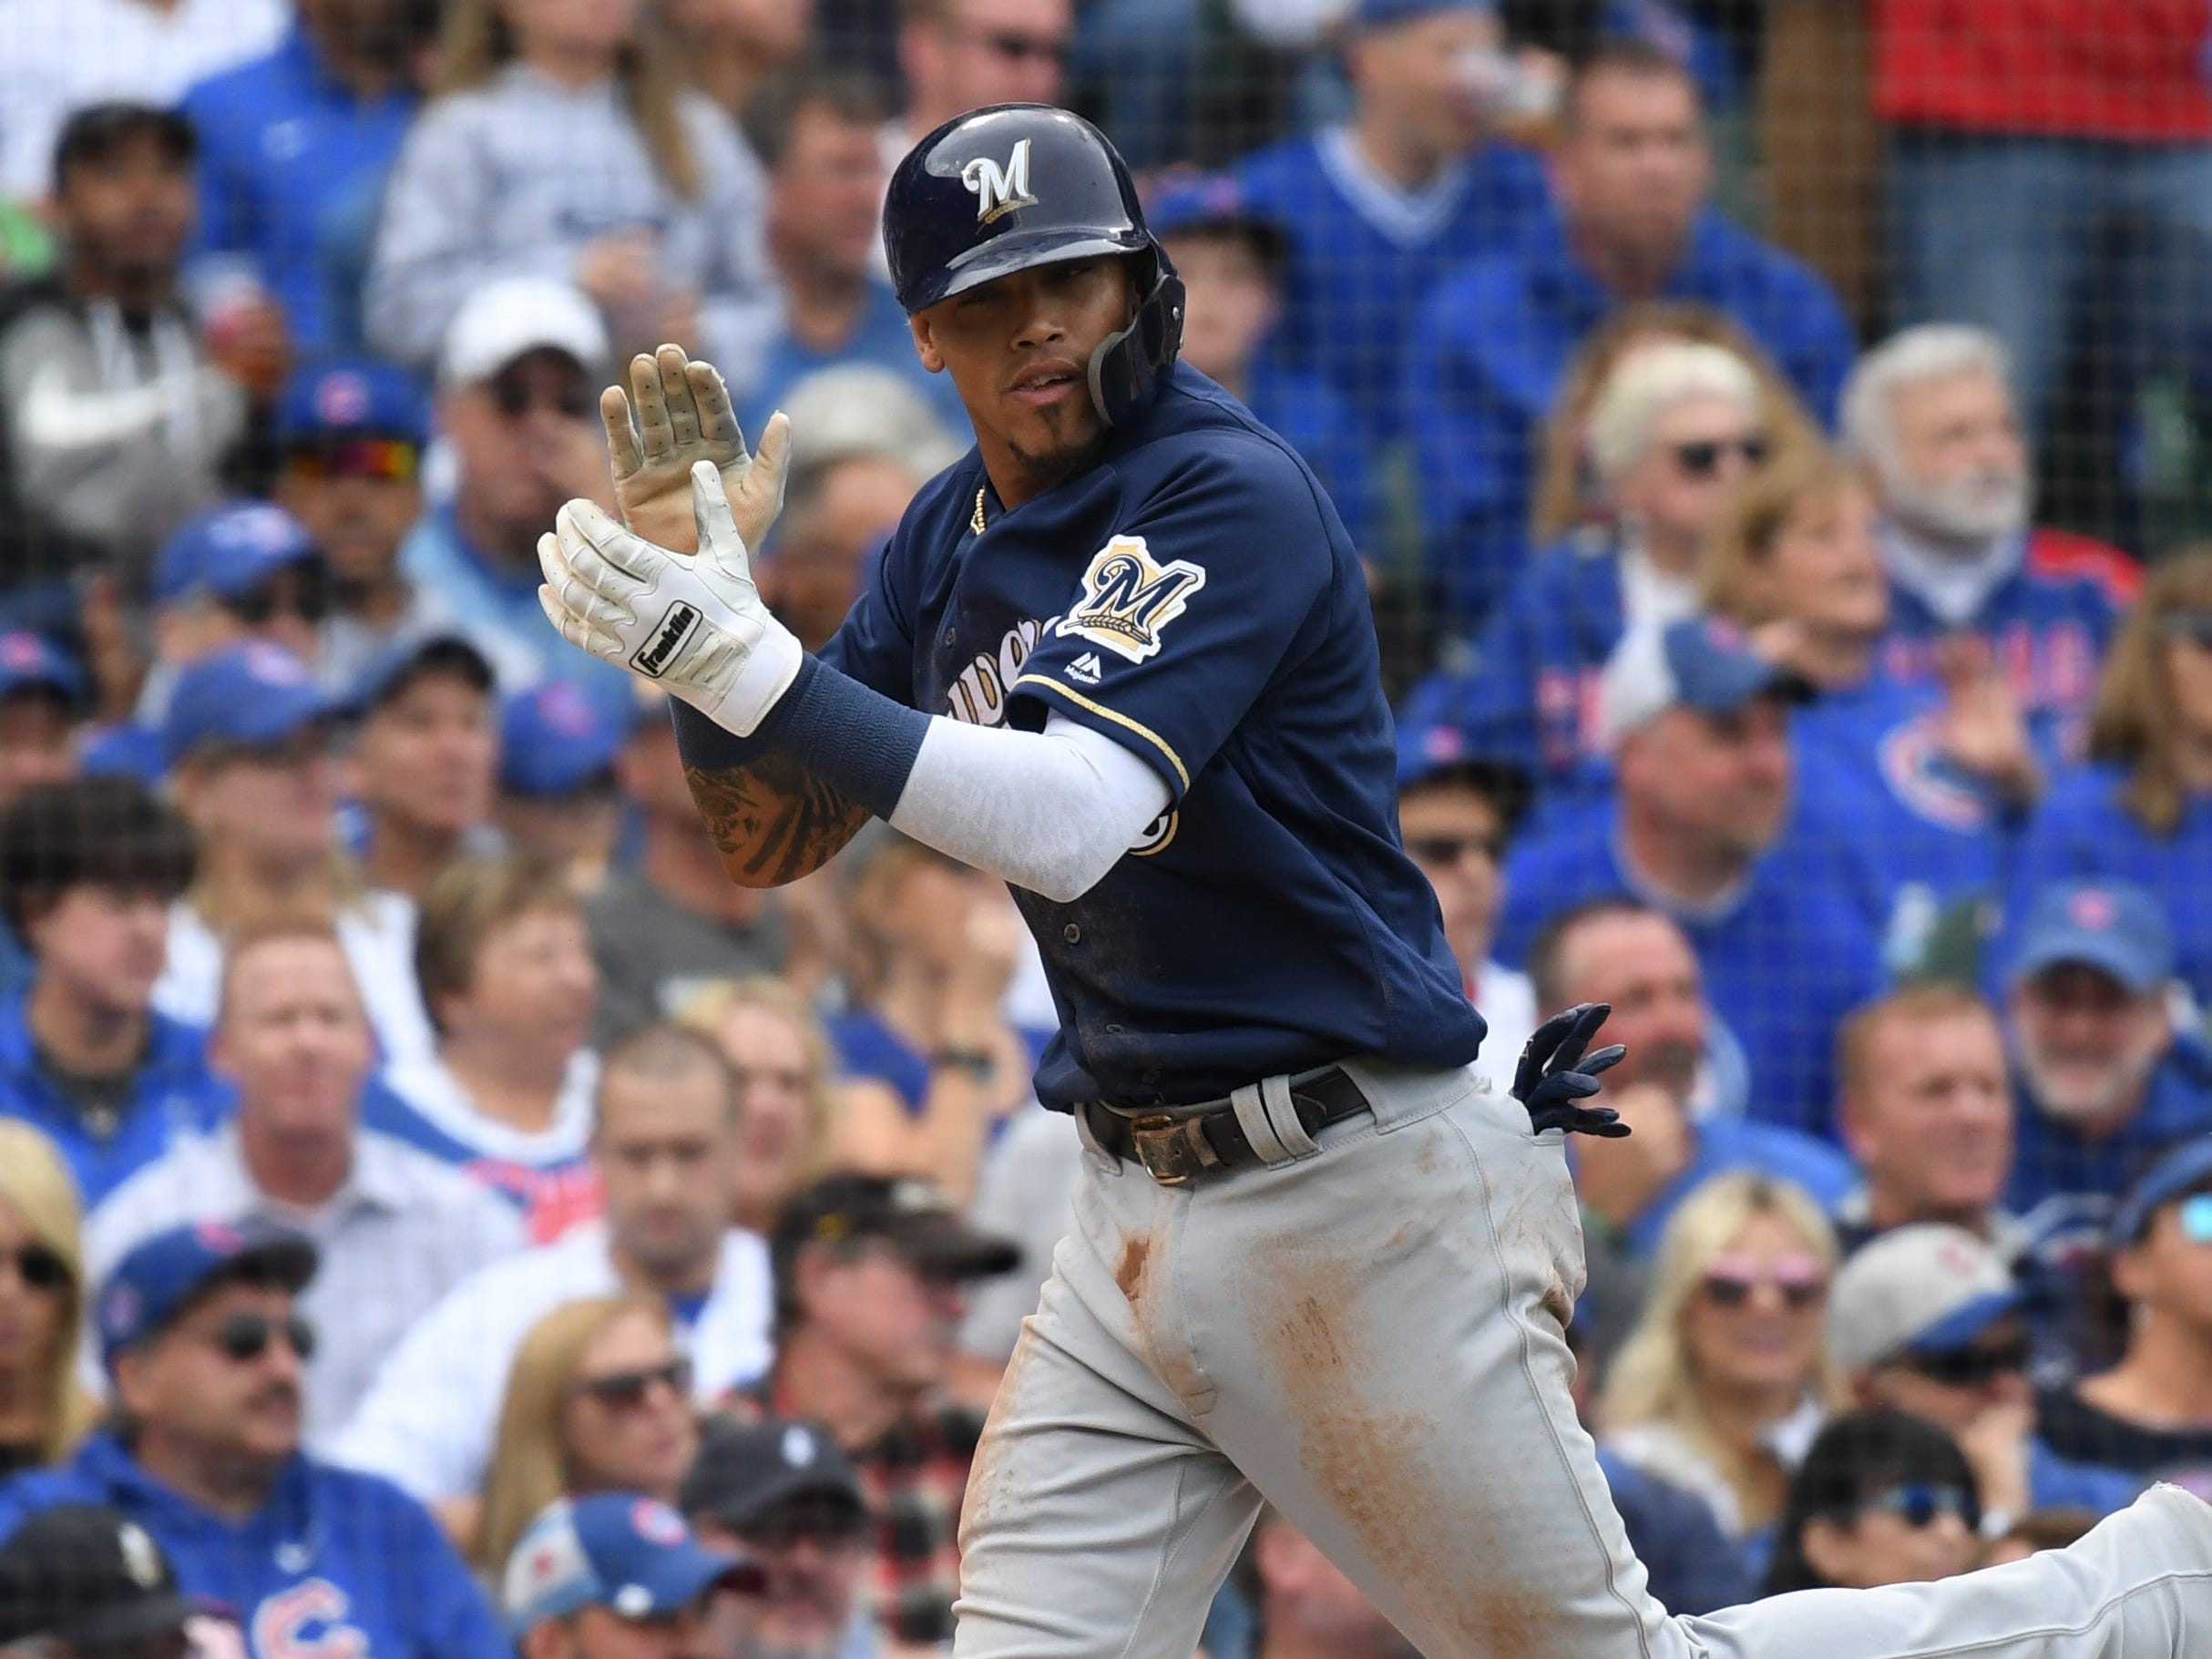 Brewers shortstop Orlando Arcia scores on Christian Yelich's single in the third inning.